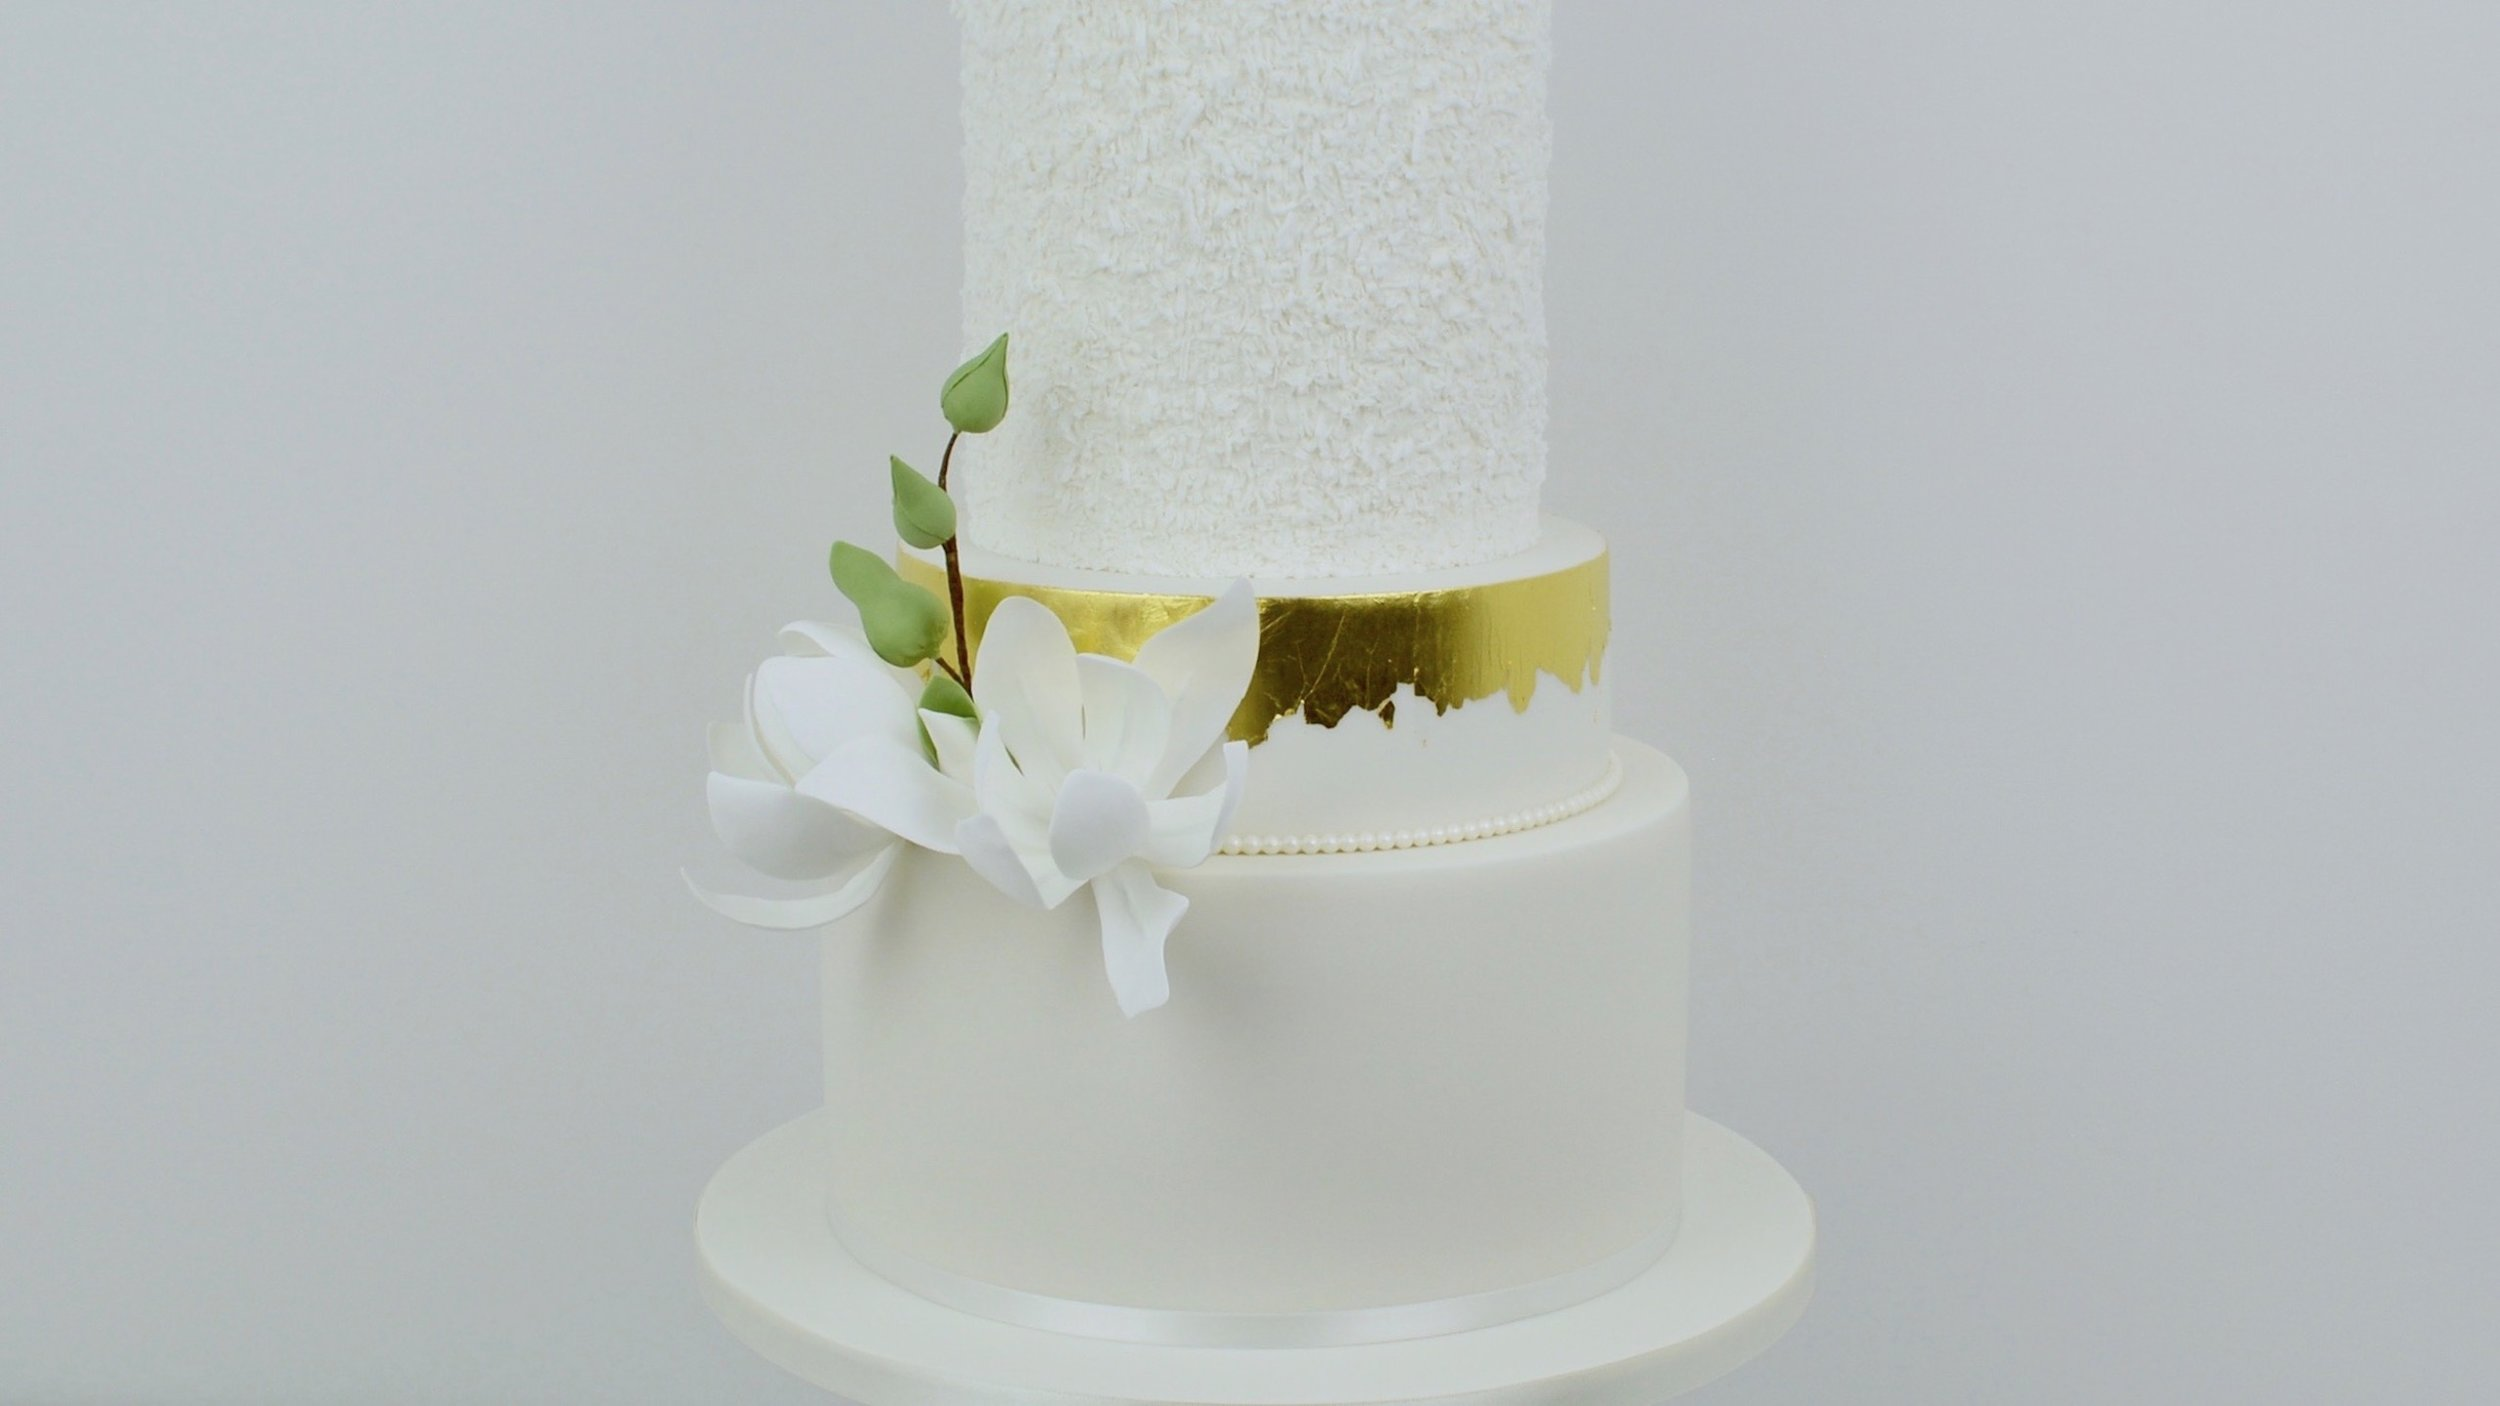 White Magnolias - Contemporary and timeless simplicity with striking magnolia sugar flowers for an elegant and sophisticated wedding cake